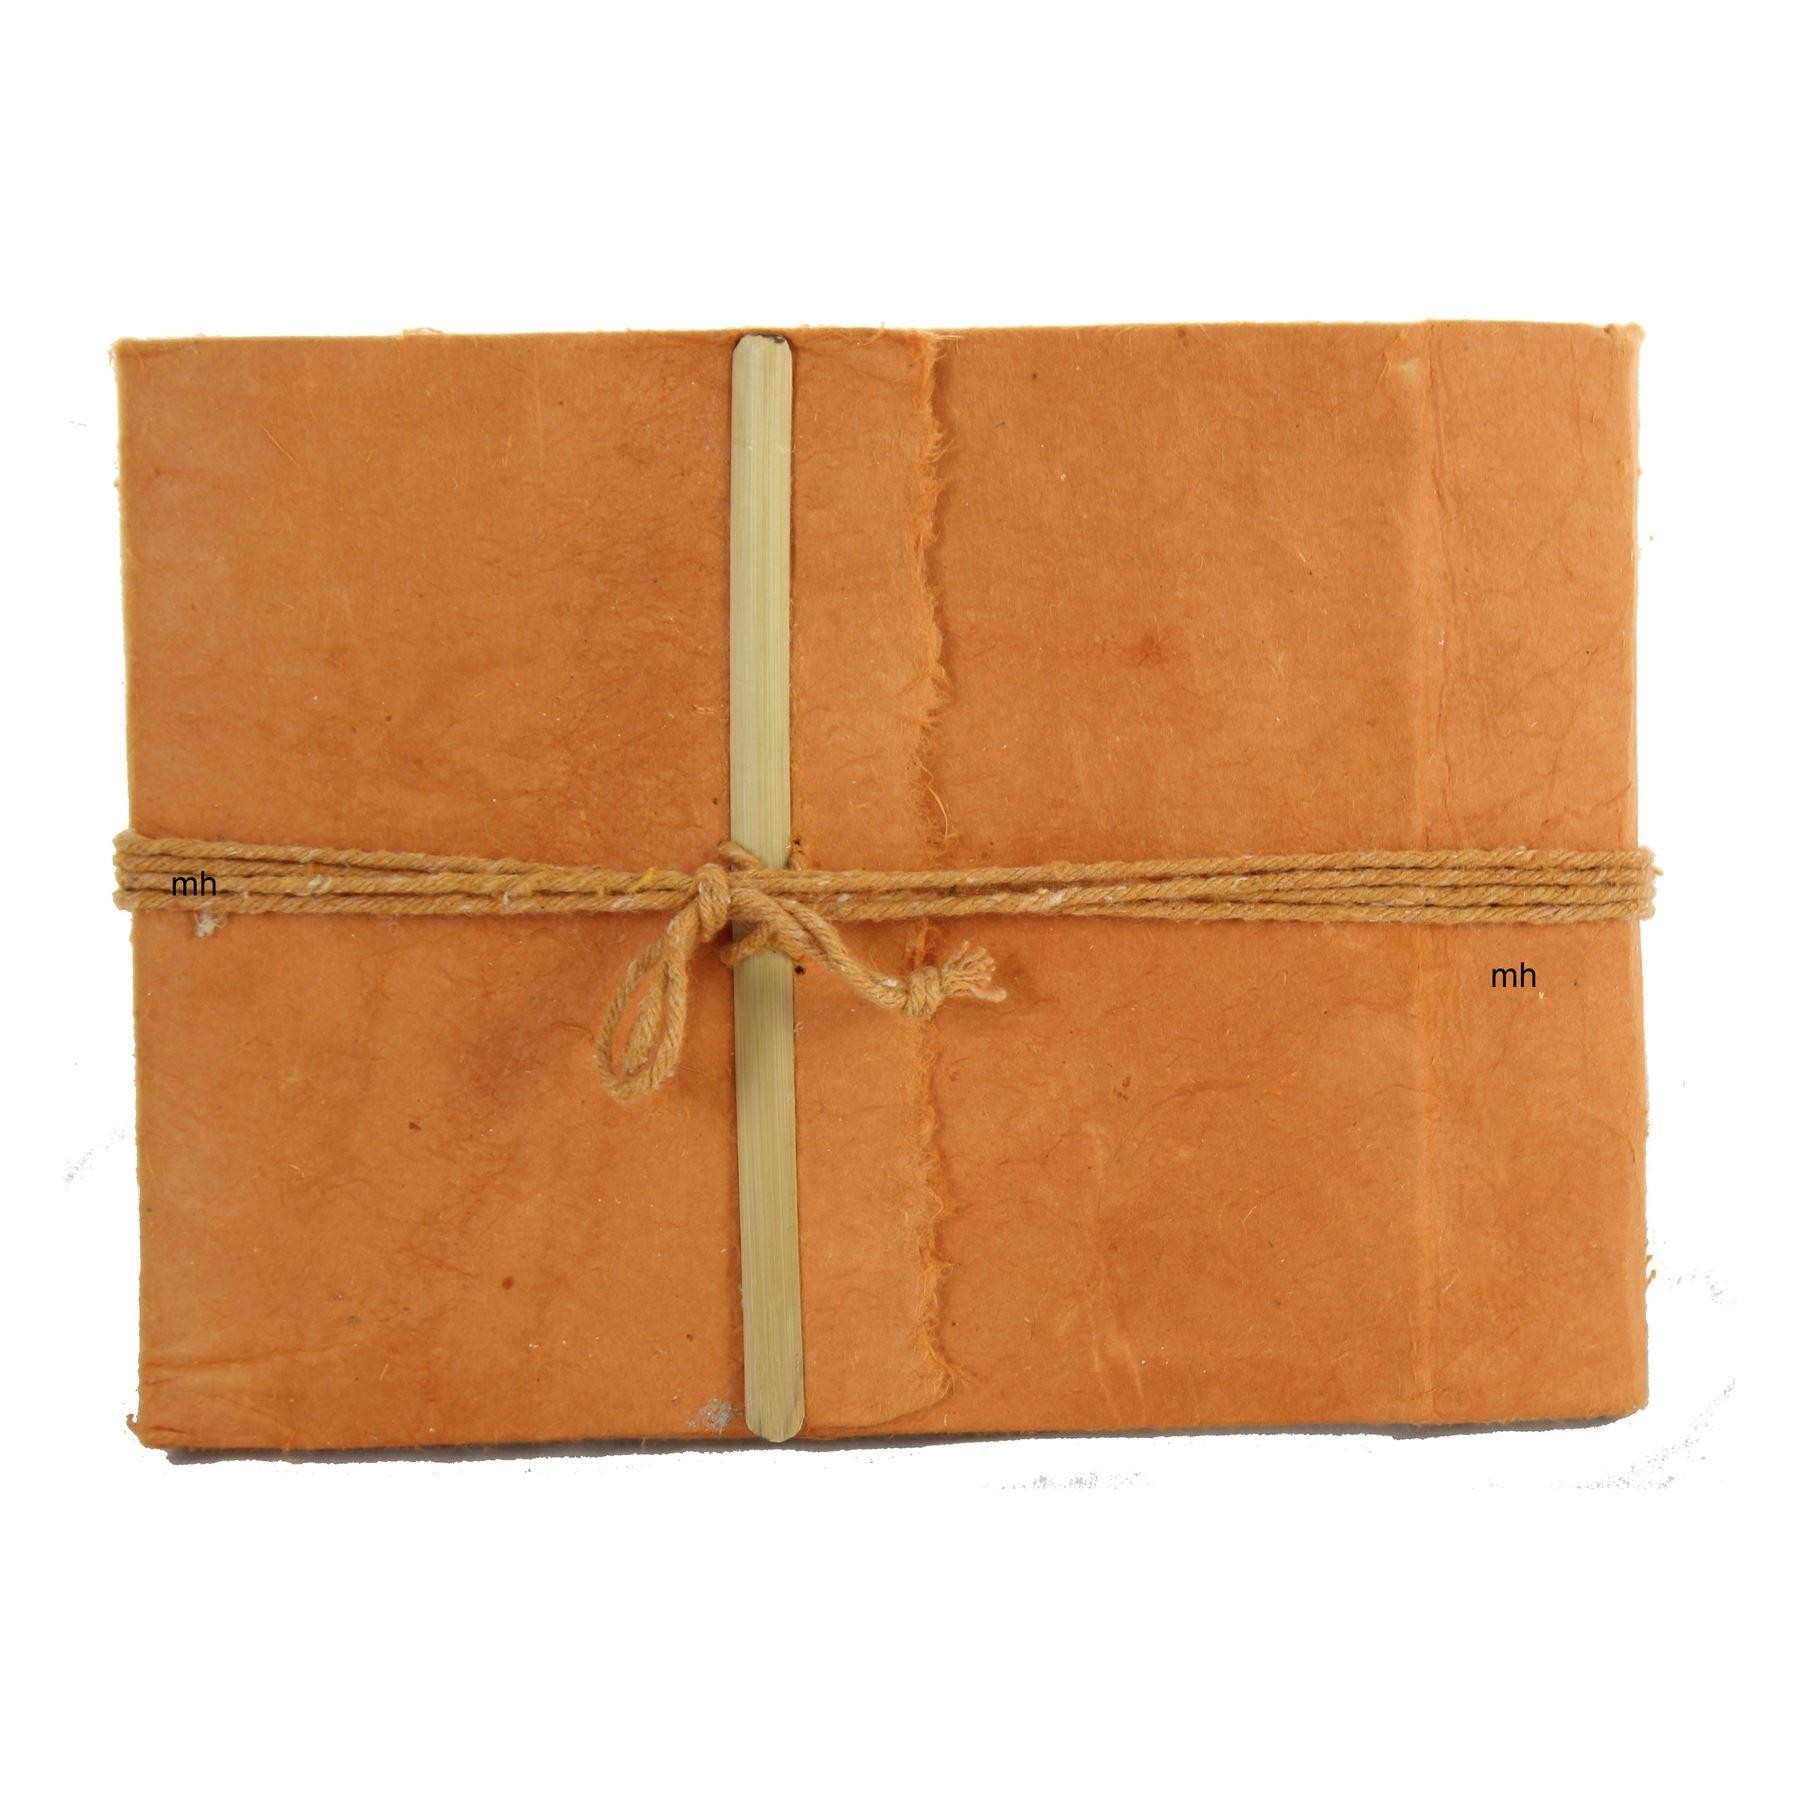 Hand Made in Nepal Note book